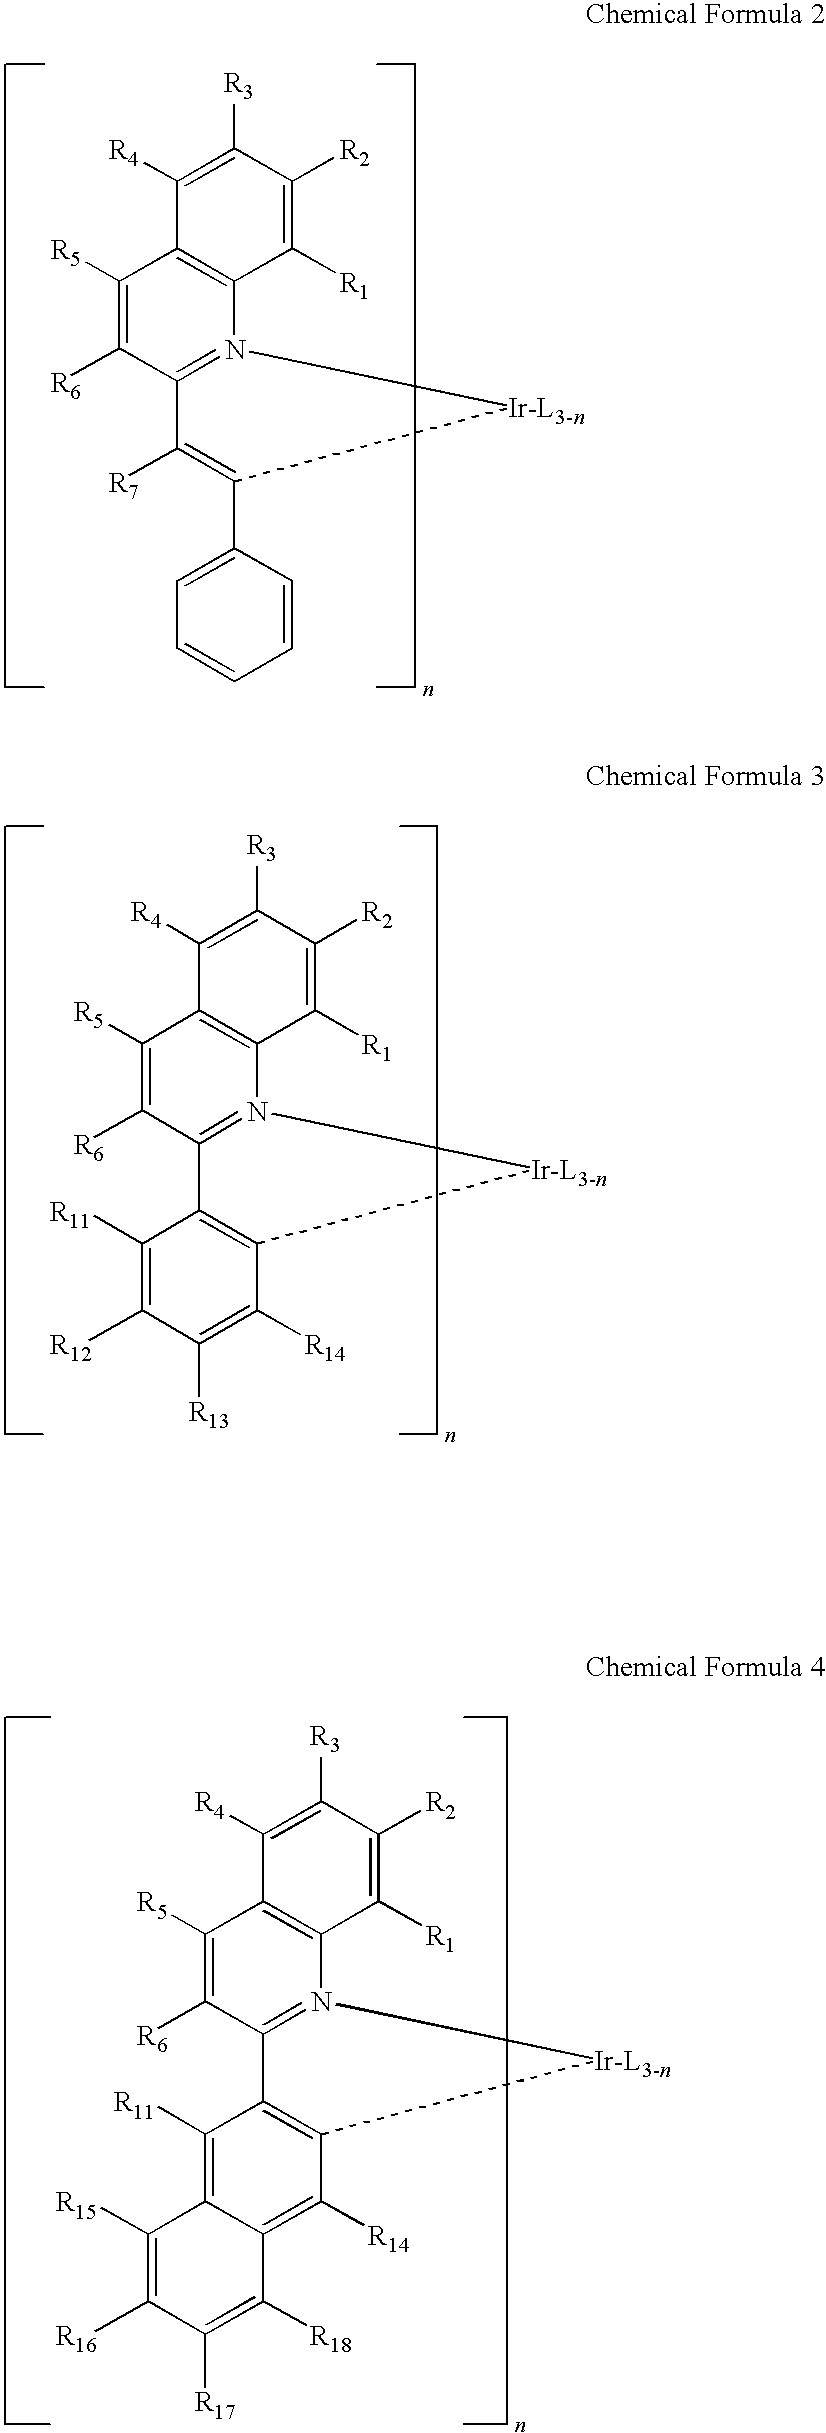 Us20090261714a1 Novel Organic Electroluminescent Compounds And